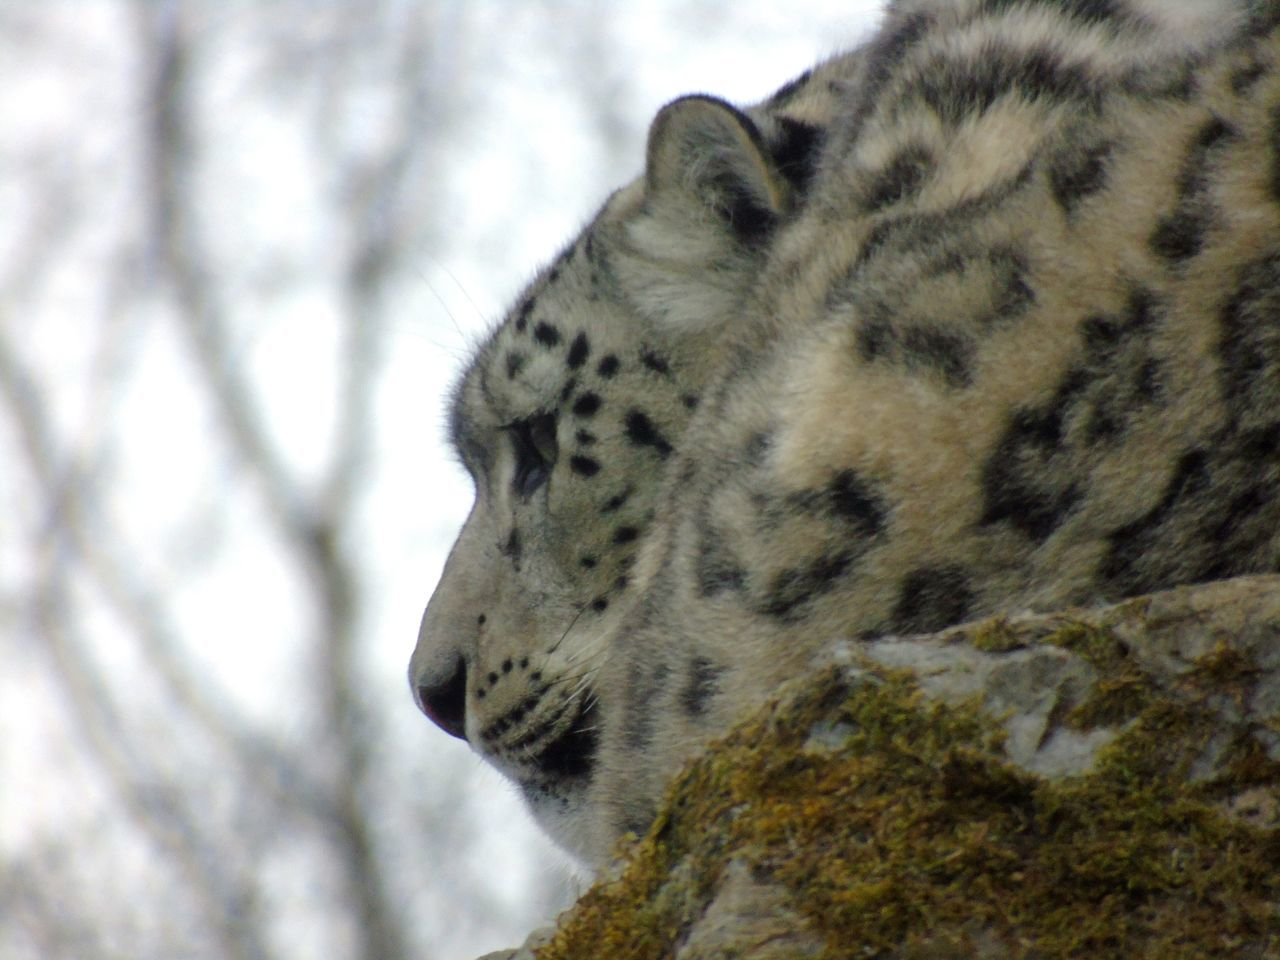 Snow Leopard Uk Eye Em Scotland Scotland Kincraig Wildlife Park Big Cats Cats Of EyeEm Big Cat Cat Snow Leopards >  Snow Leopard Leopard Animal Wildlife Safari Animals Alertness Alertness Animal Head Animal Themes Beauty In Nature Beautiful Animals  Wildlife Photography Wildlife & Nature Backgrounds Close-up Nature Mammal